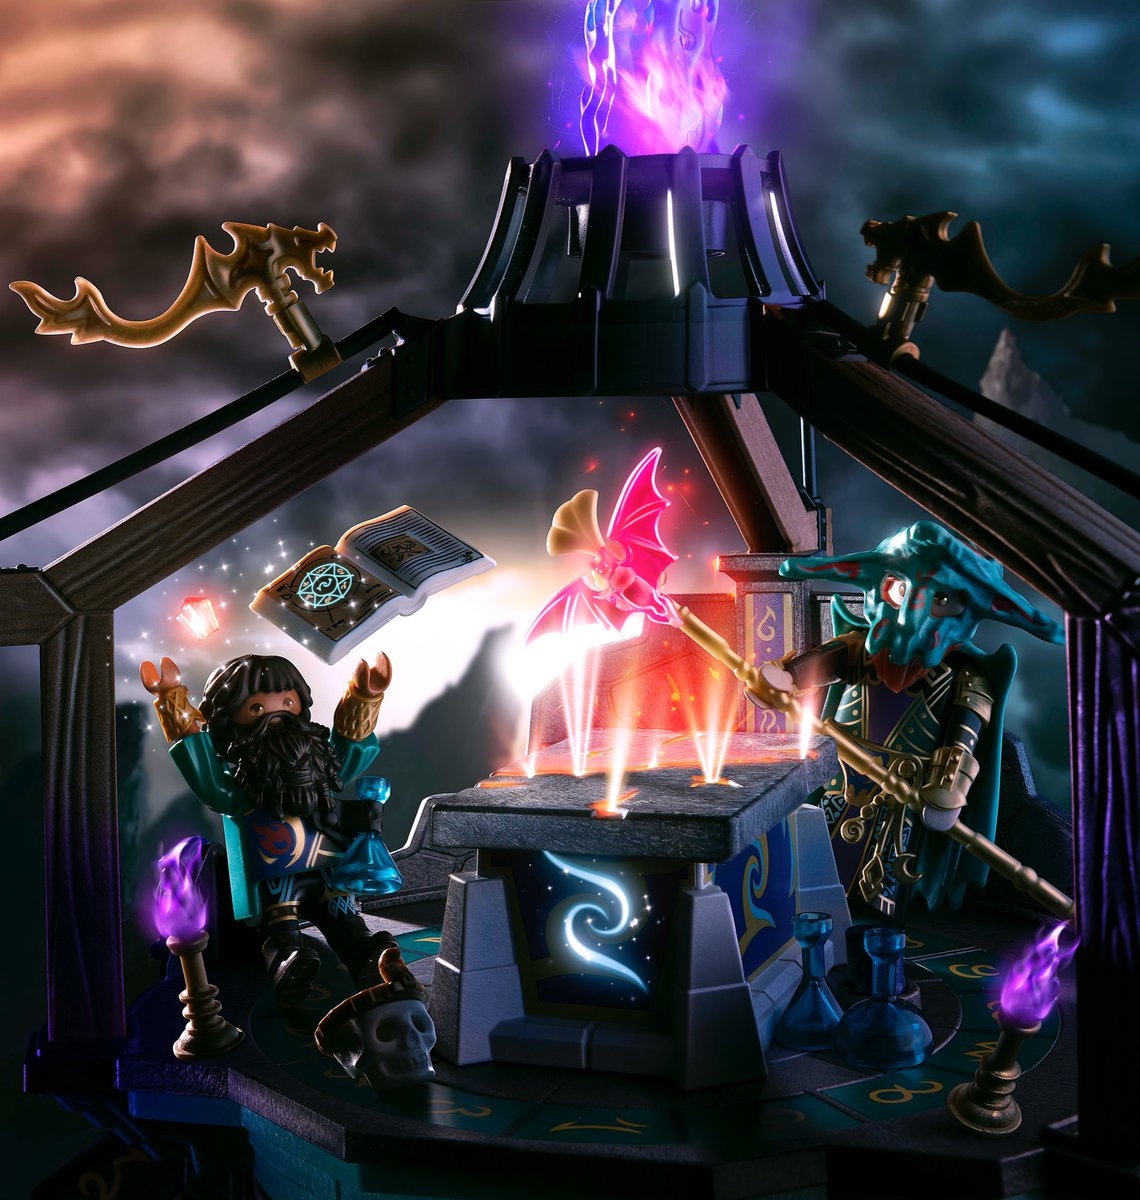 What do you think: Did the two dark wizards Umbrathor and Vermithor conjure up the failure of Facebook, Instagram and WhatsApp in their magical demon portal last night? 🤨  Novelmore fans know that they usually summon scary demons! 👹  #PLAYMOBIL #Novelmore #VioletVale https://t.co/4ZUsfZRexX